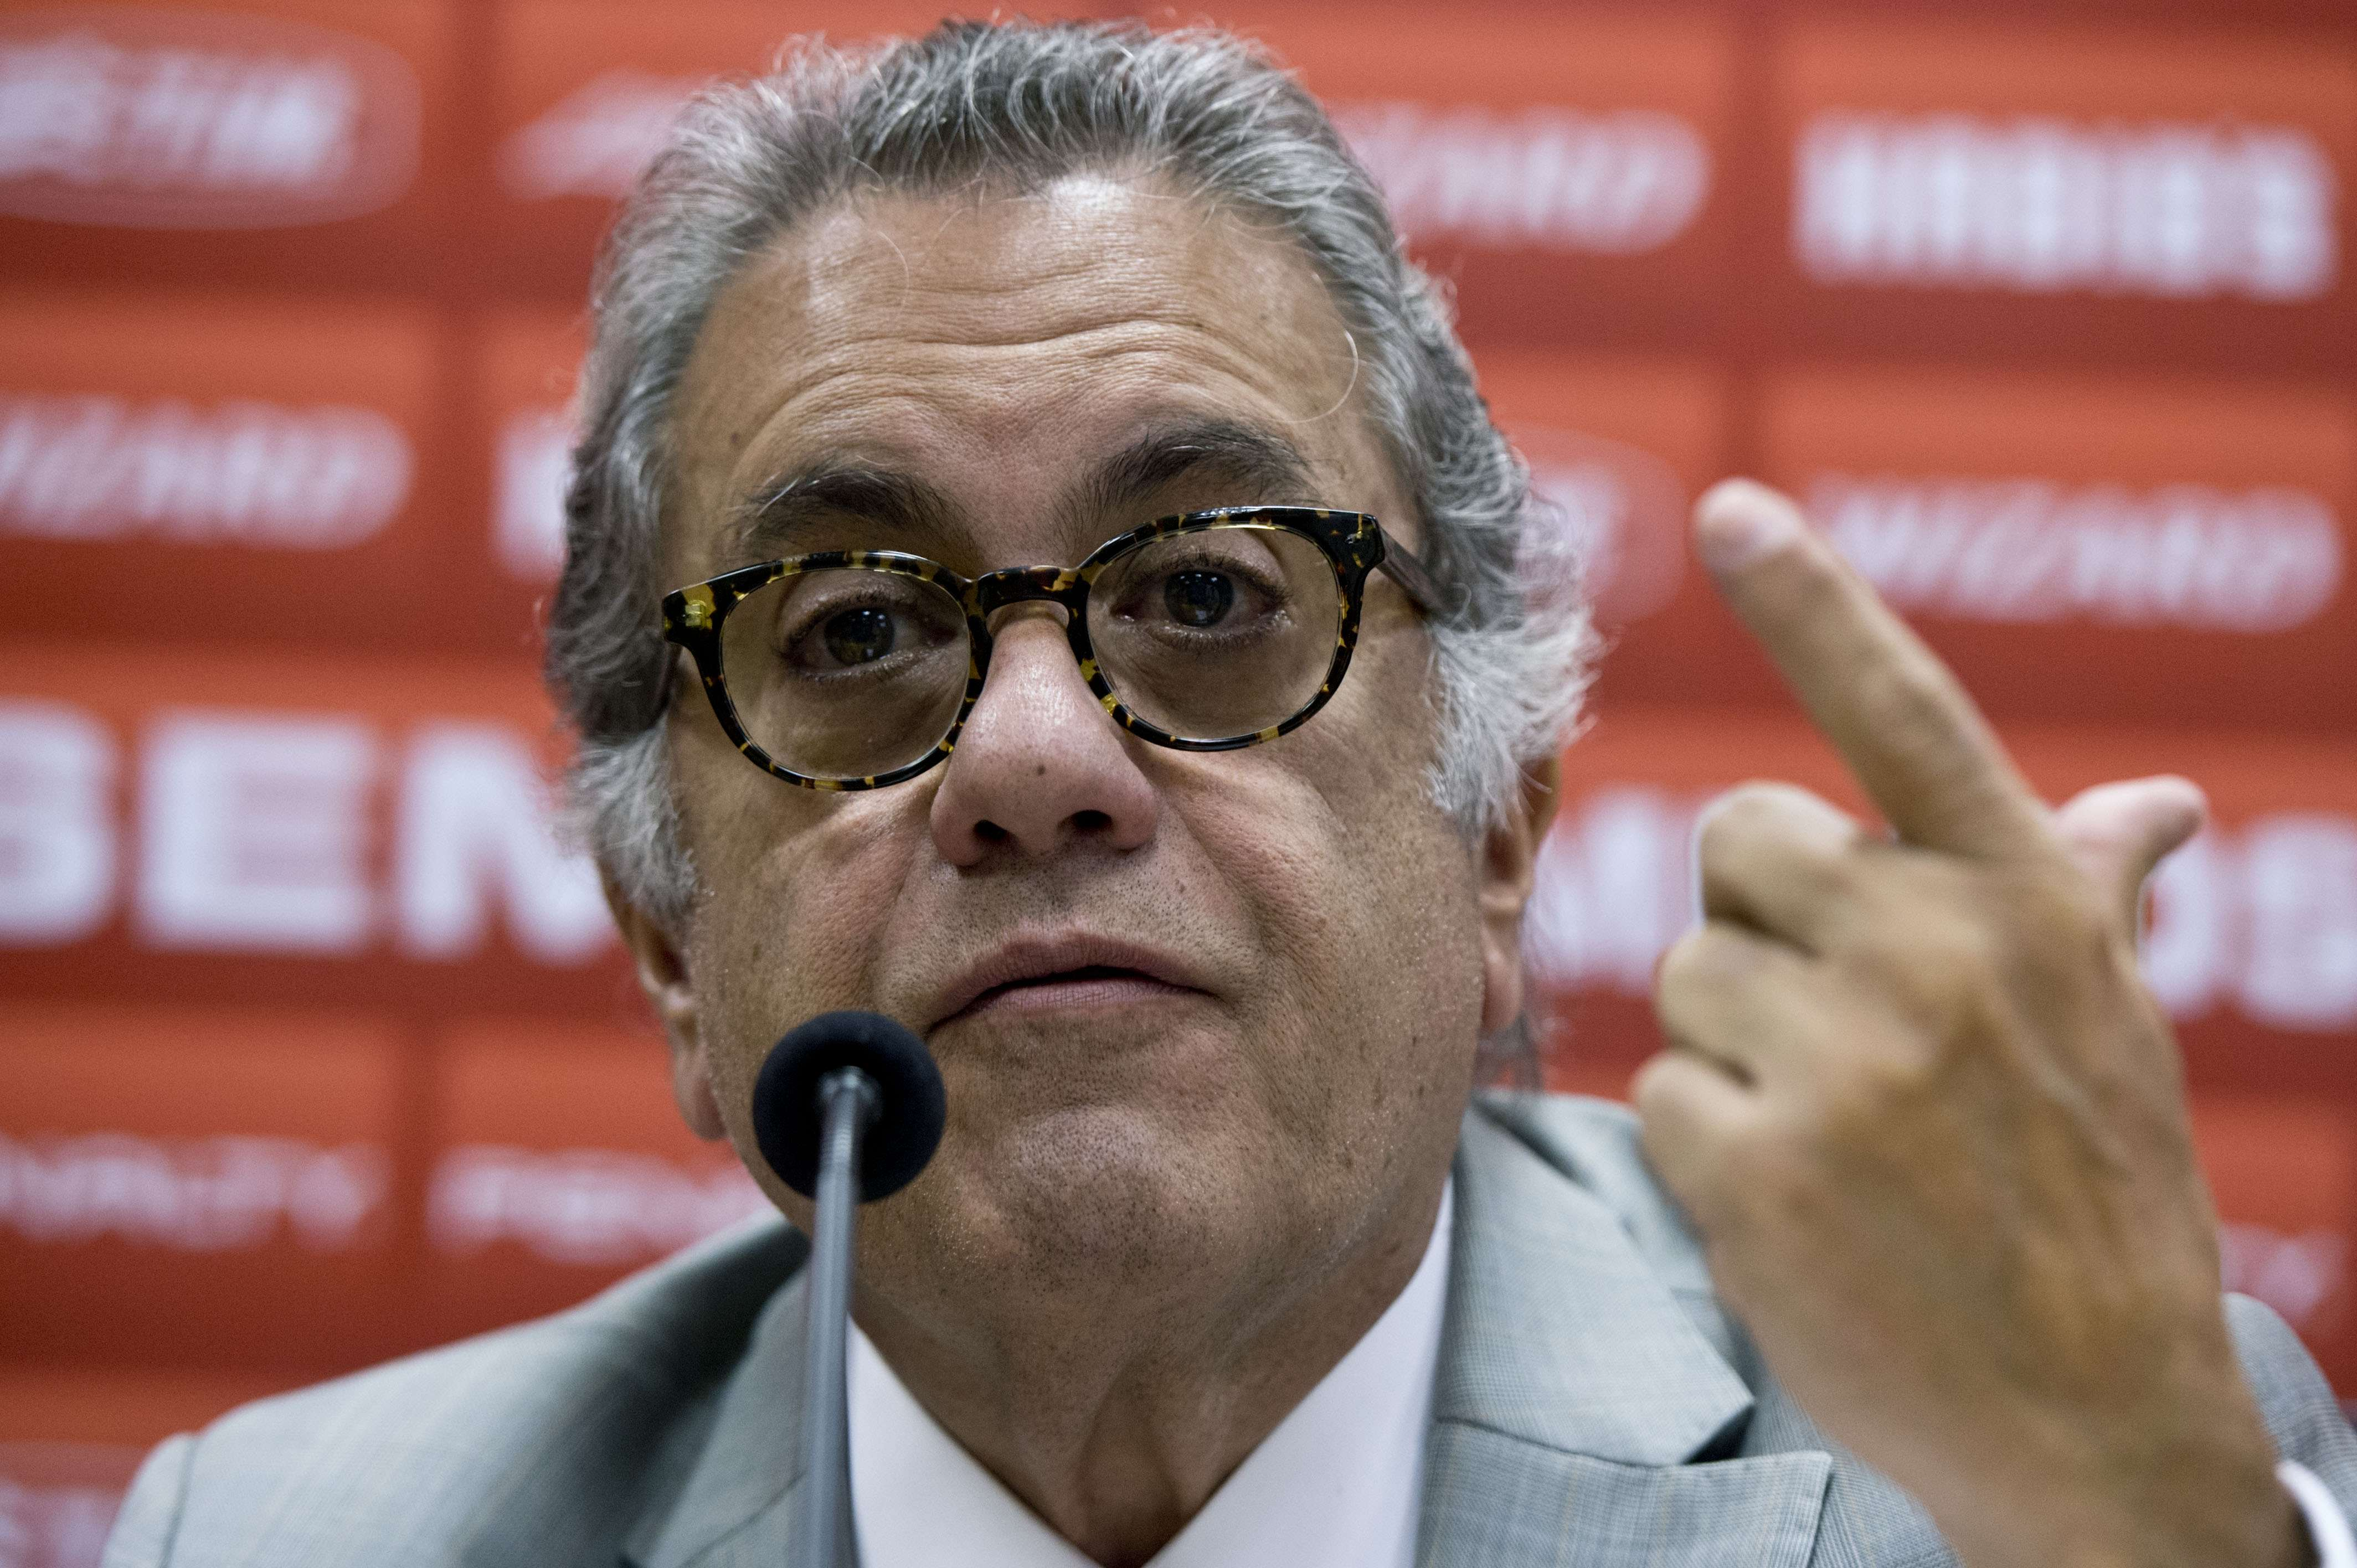 Aidar criticou duramente Paulo Nobre, mas ainda acredita que pode ter contato amigável com ele Foto: Bruno Santos/Terra